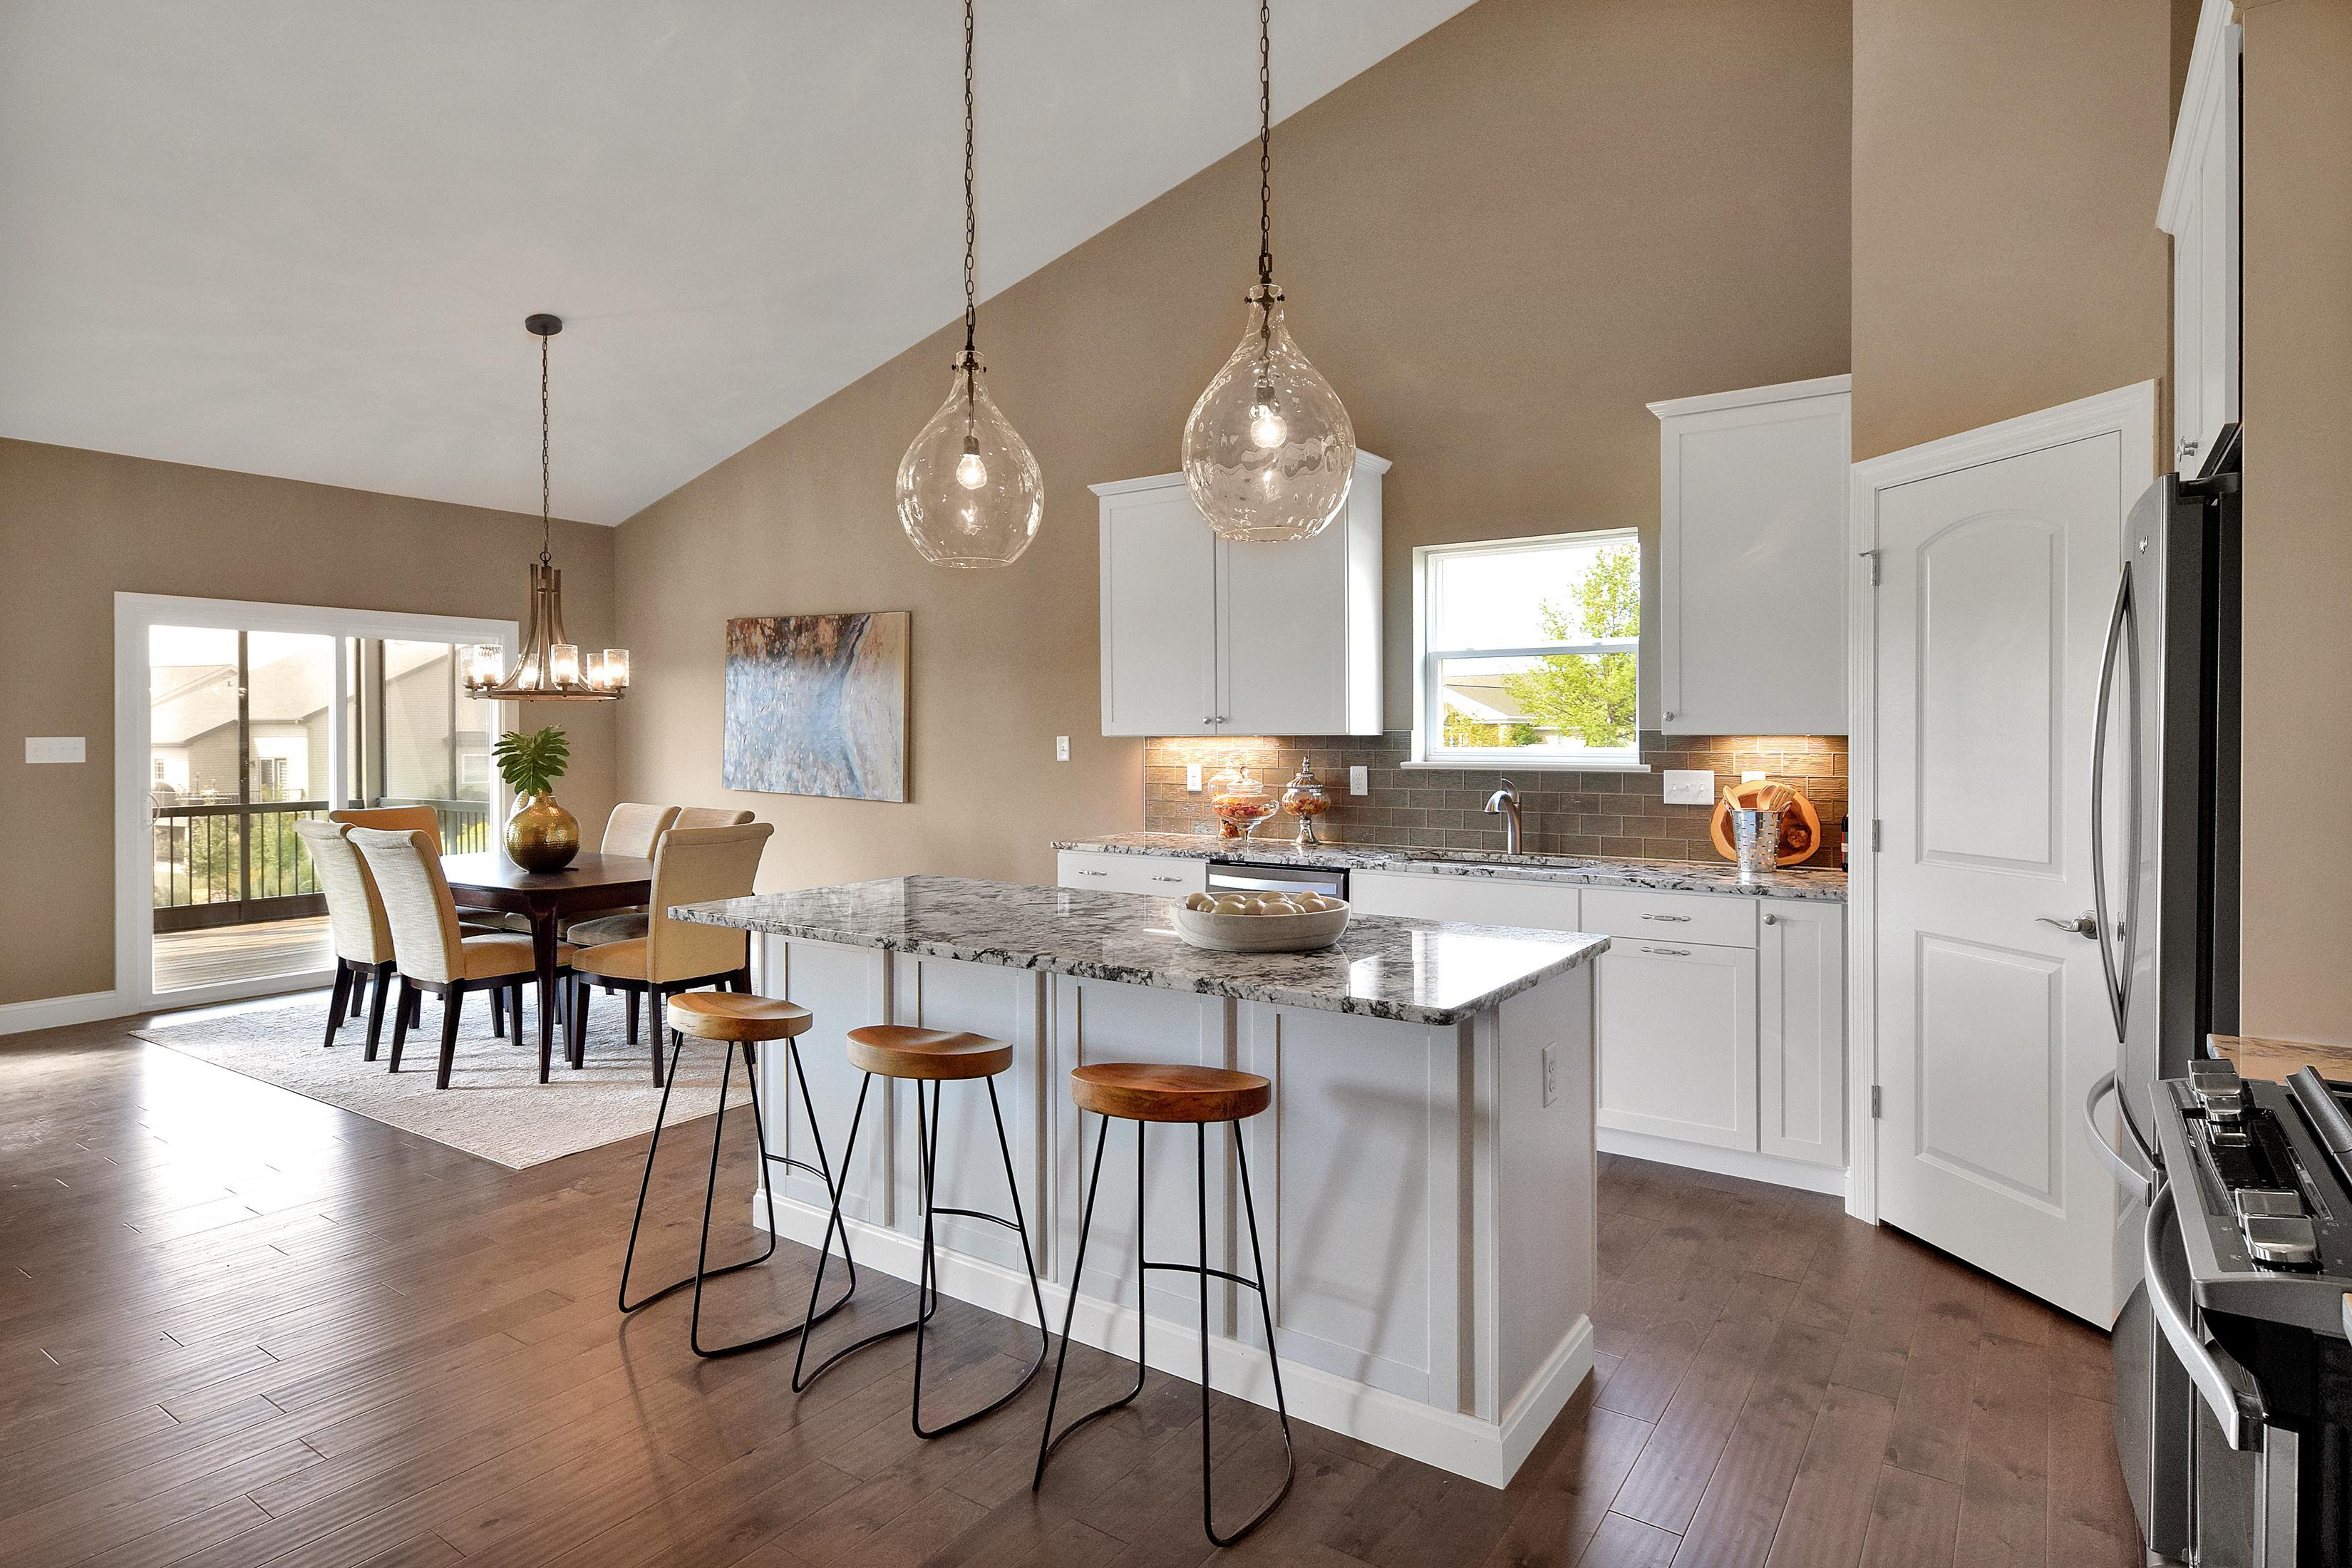 Kitchen featured in The Columbia By The Kemp Homes Company  in St. Louis, MO